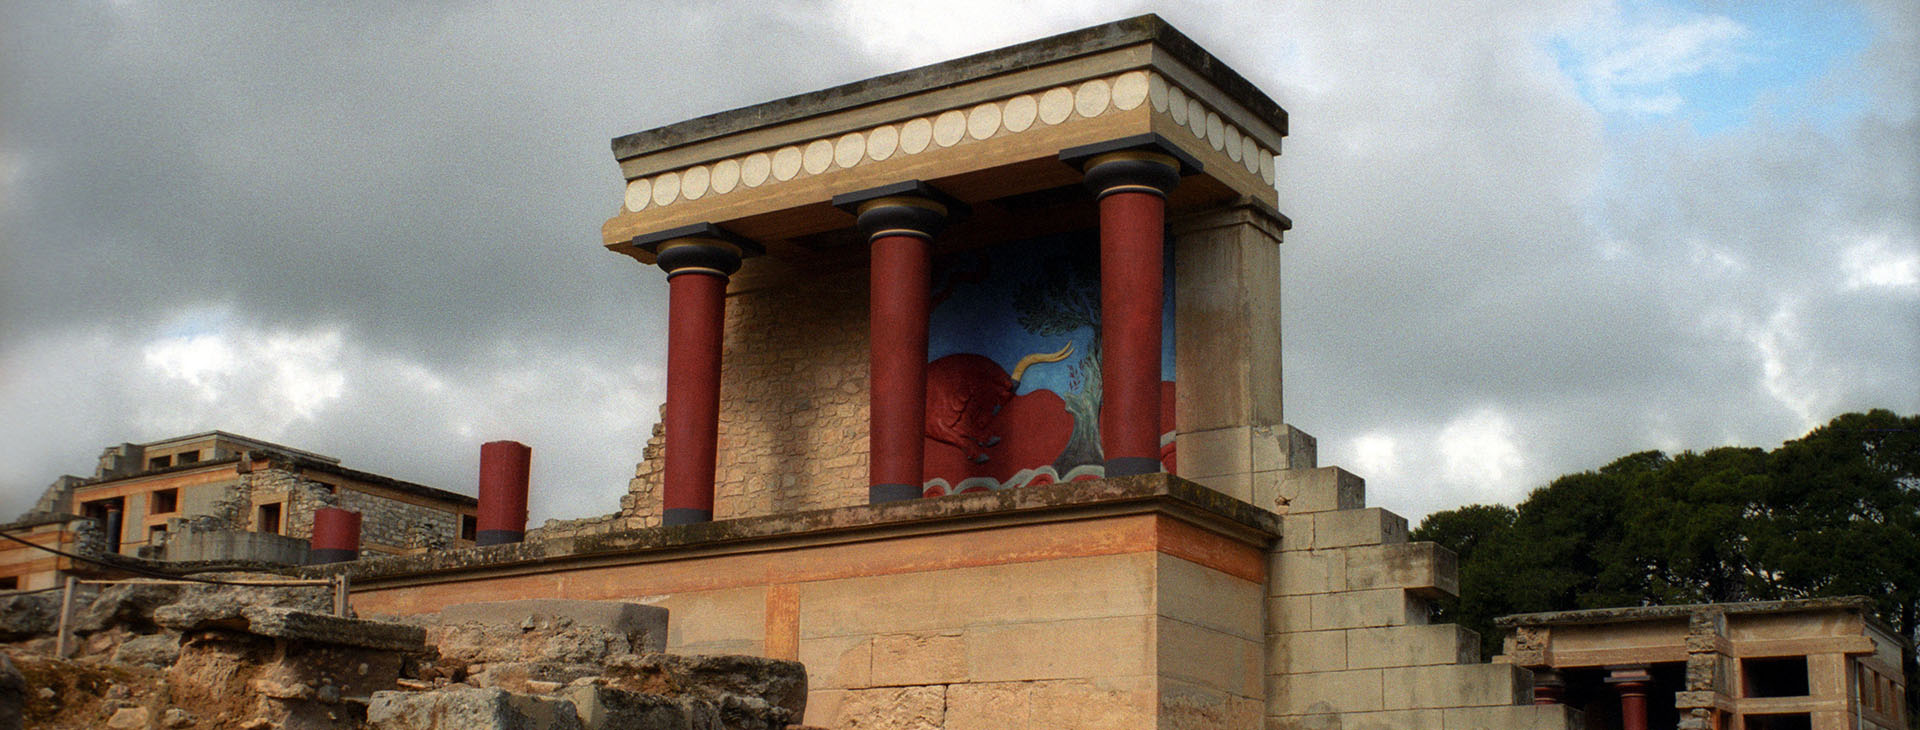 The Minoan palace at the archaeological site of Knossos, Heraklion